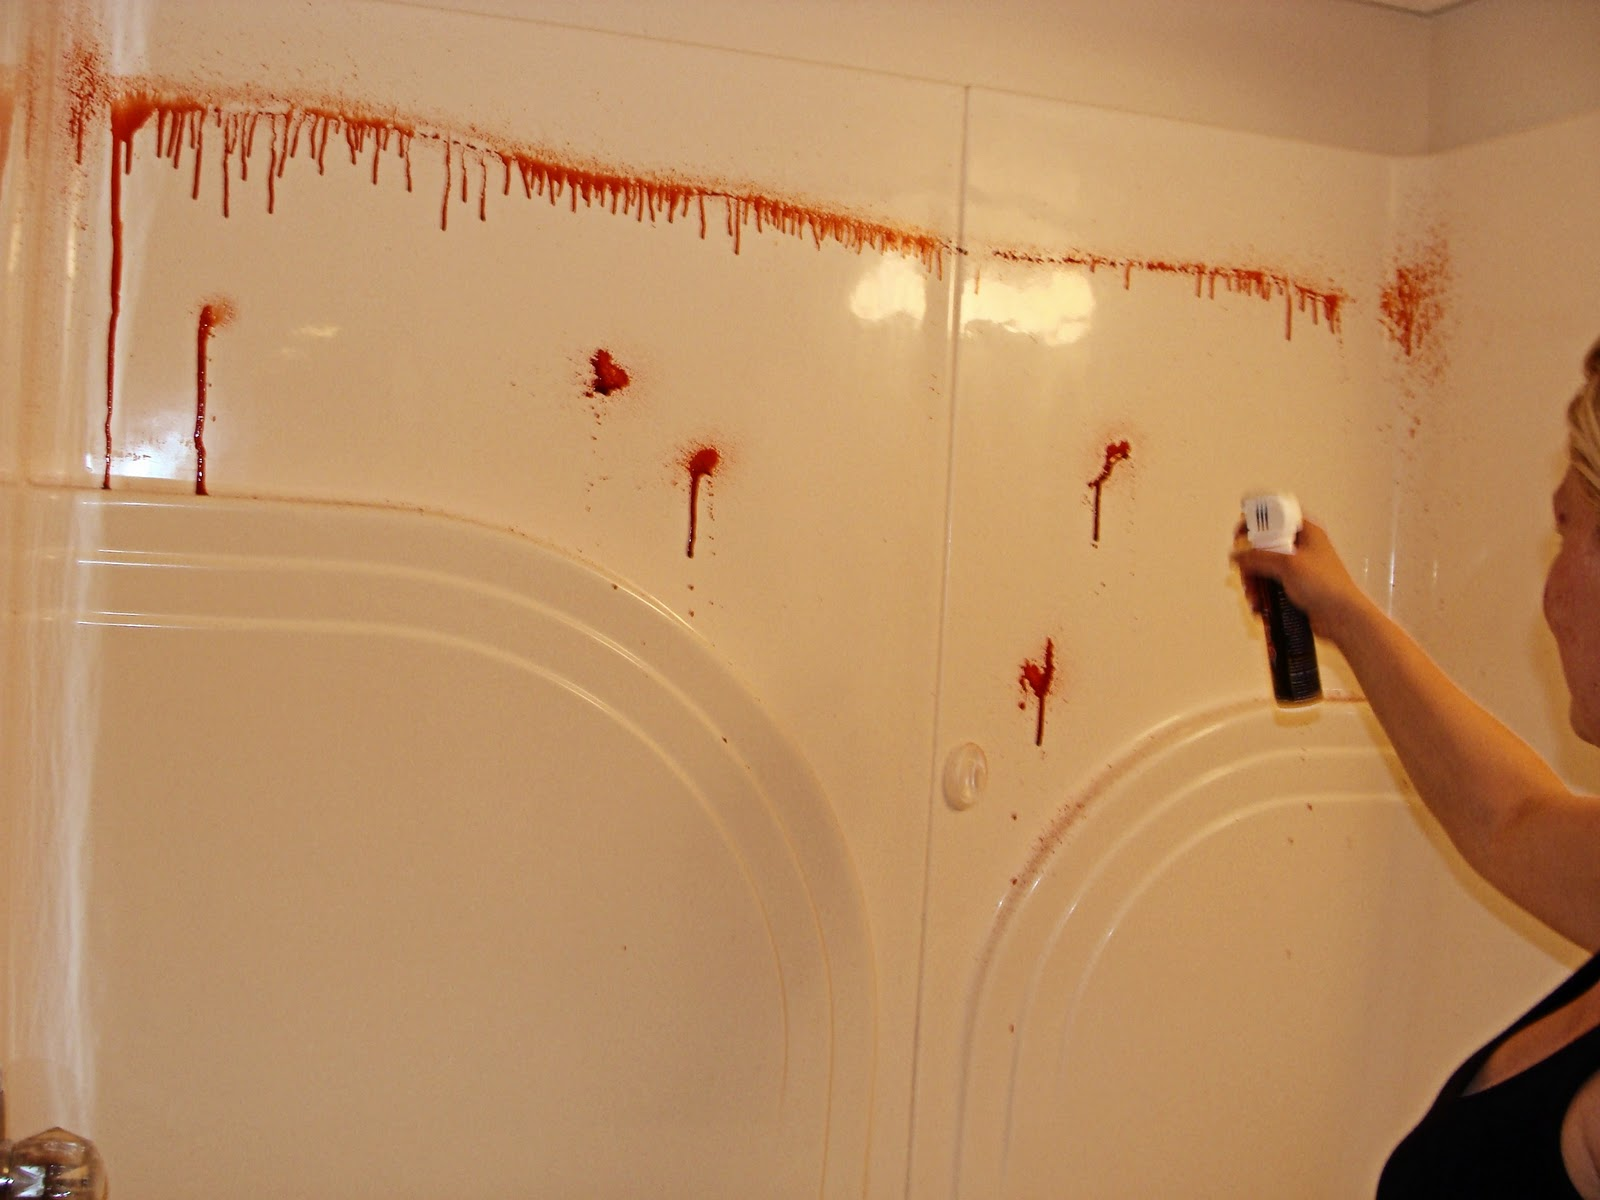 Spray Blood Was Used To Splatter Wash Cloths, Hand Towels And A Thrift  Store Bath Mat.